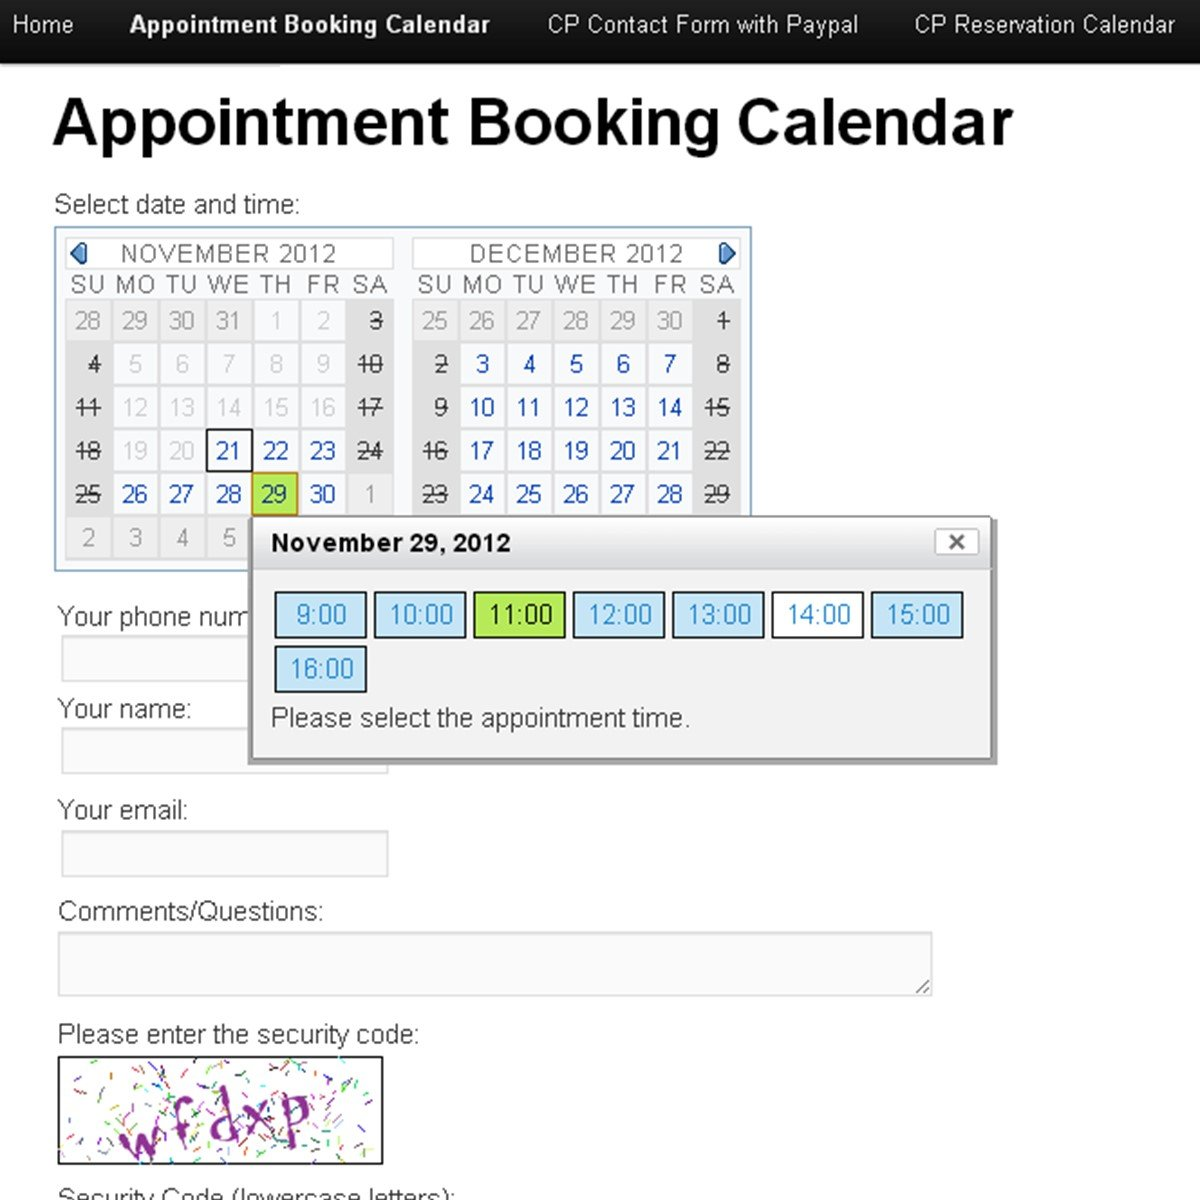 Appointment Booking Calendar Alternatives and Similar